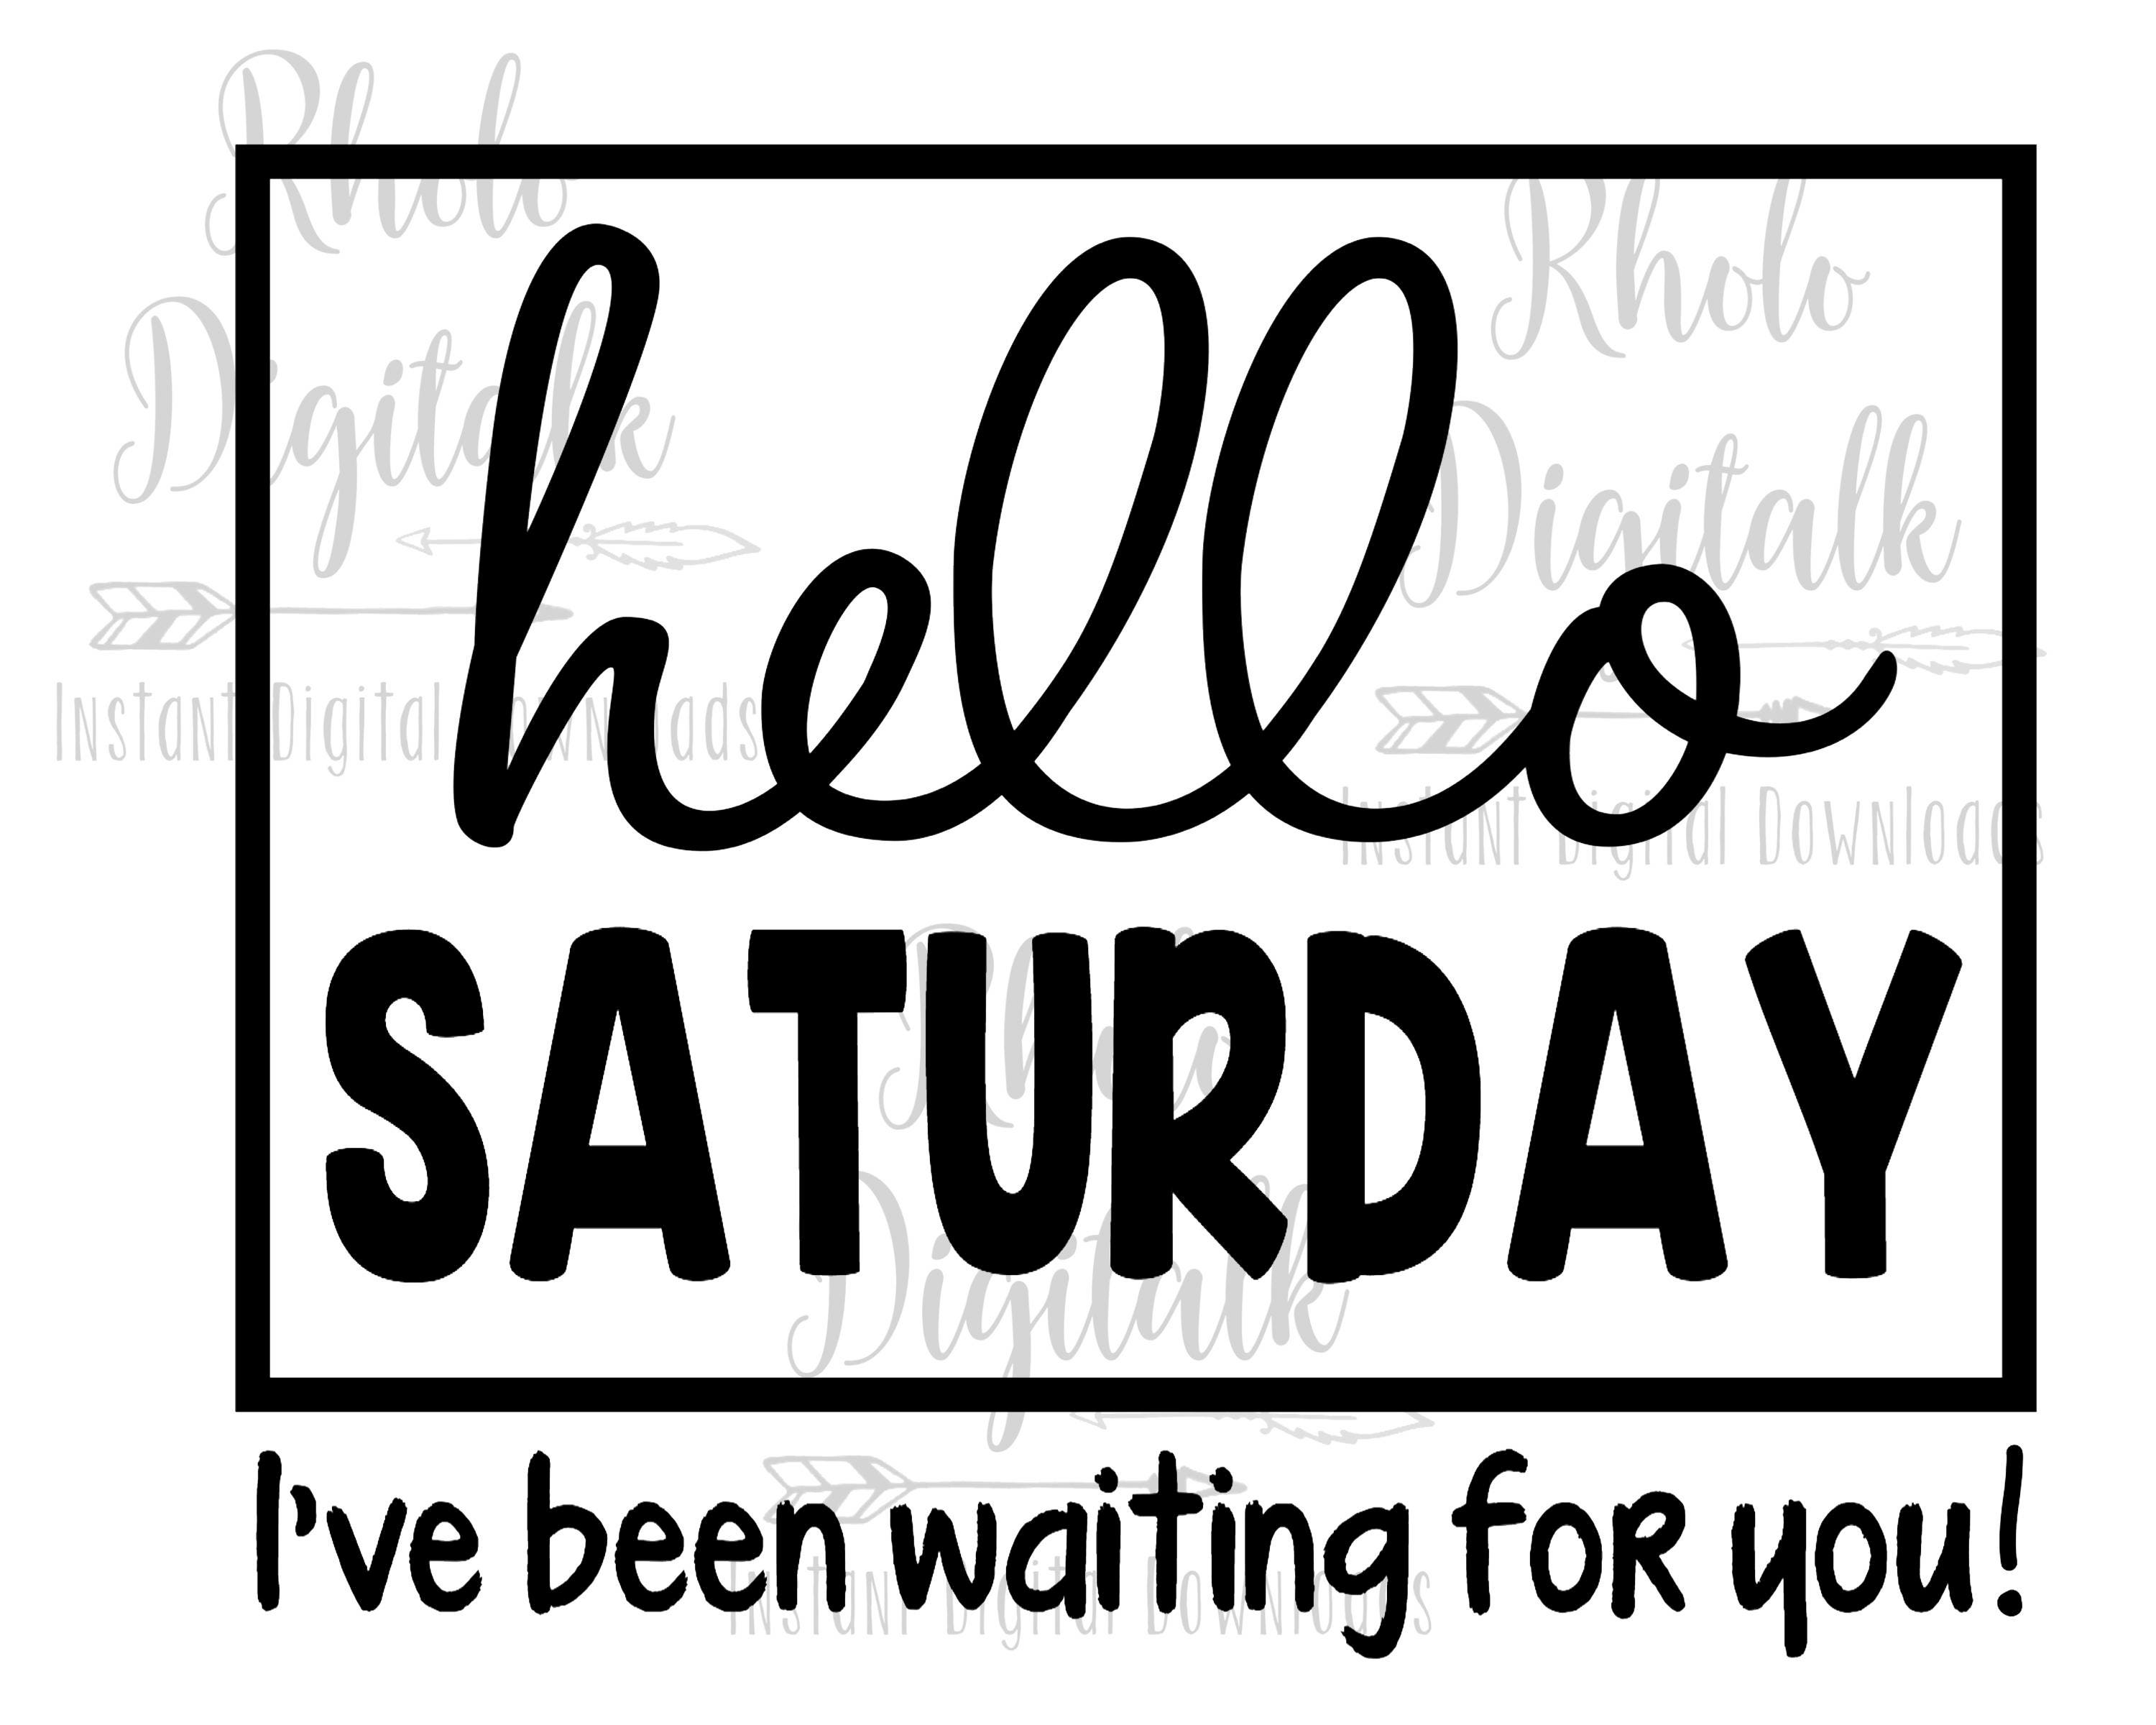 Hello saturday-Ive been waiting for you svg-Instant Digital Download